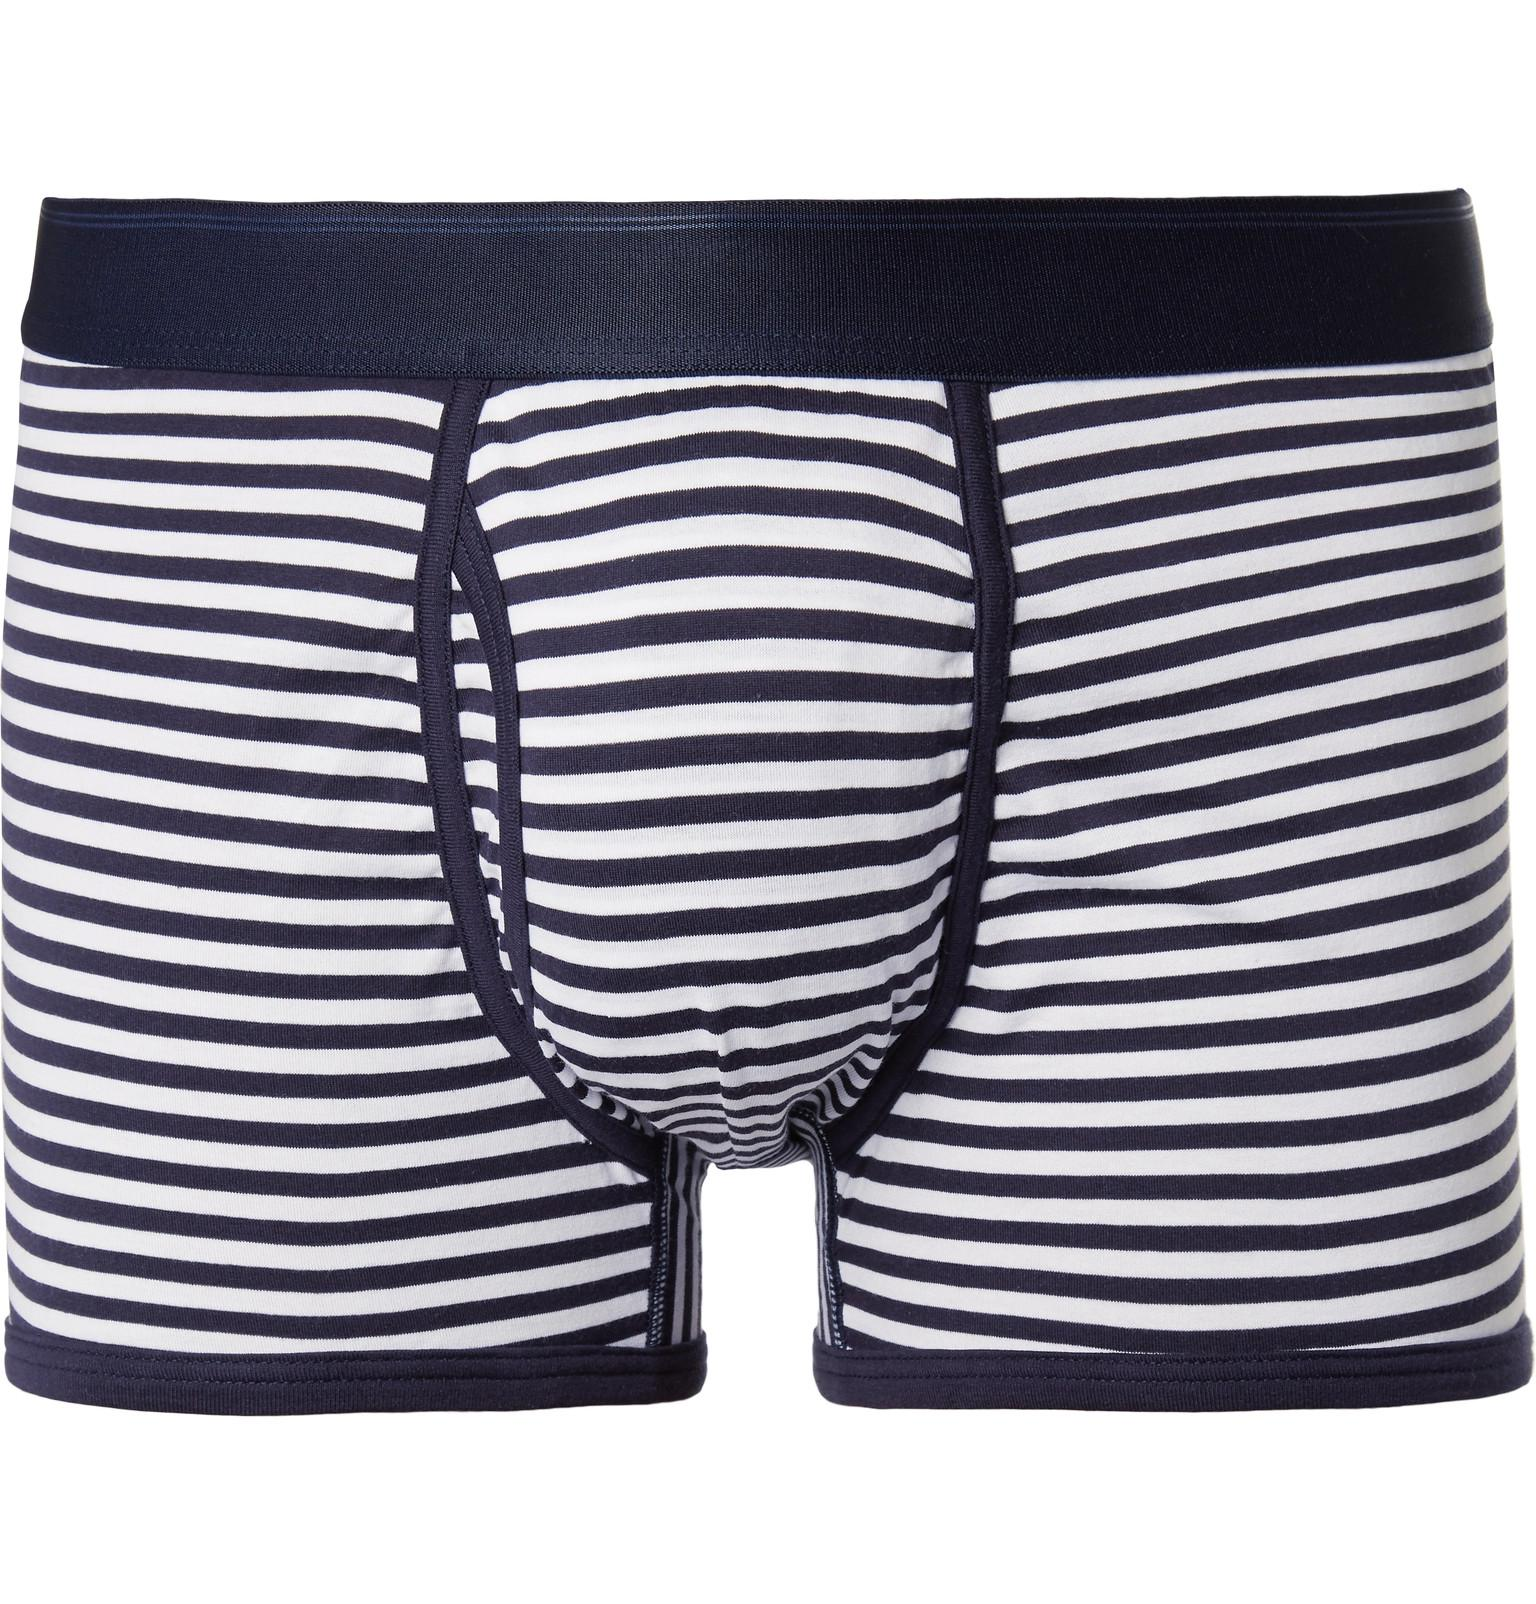 Classic Online Striped Cotton-jersey Boxer Briefs Sunspel Free Shipping Amazon Clearance Pick A Best 3iNaO7